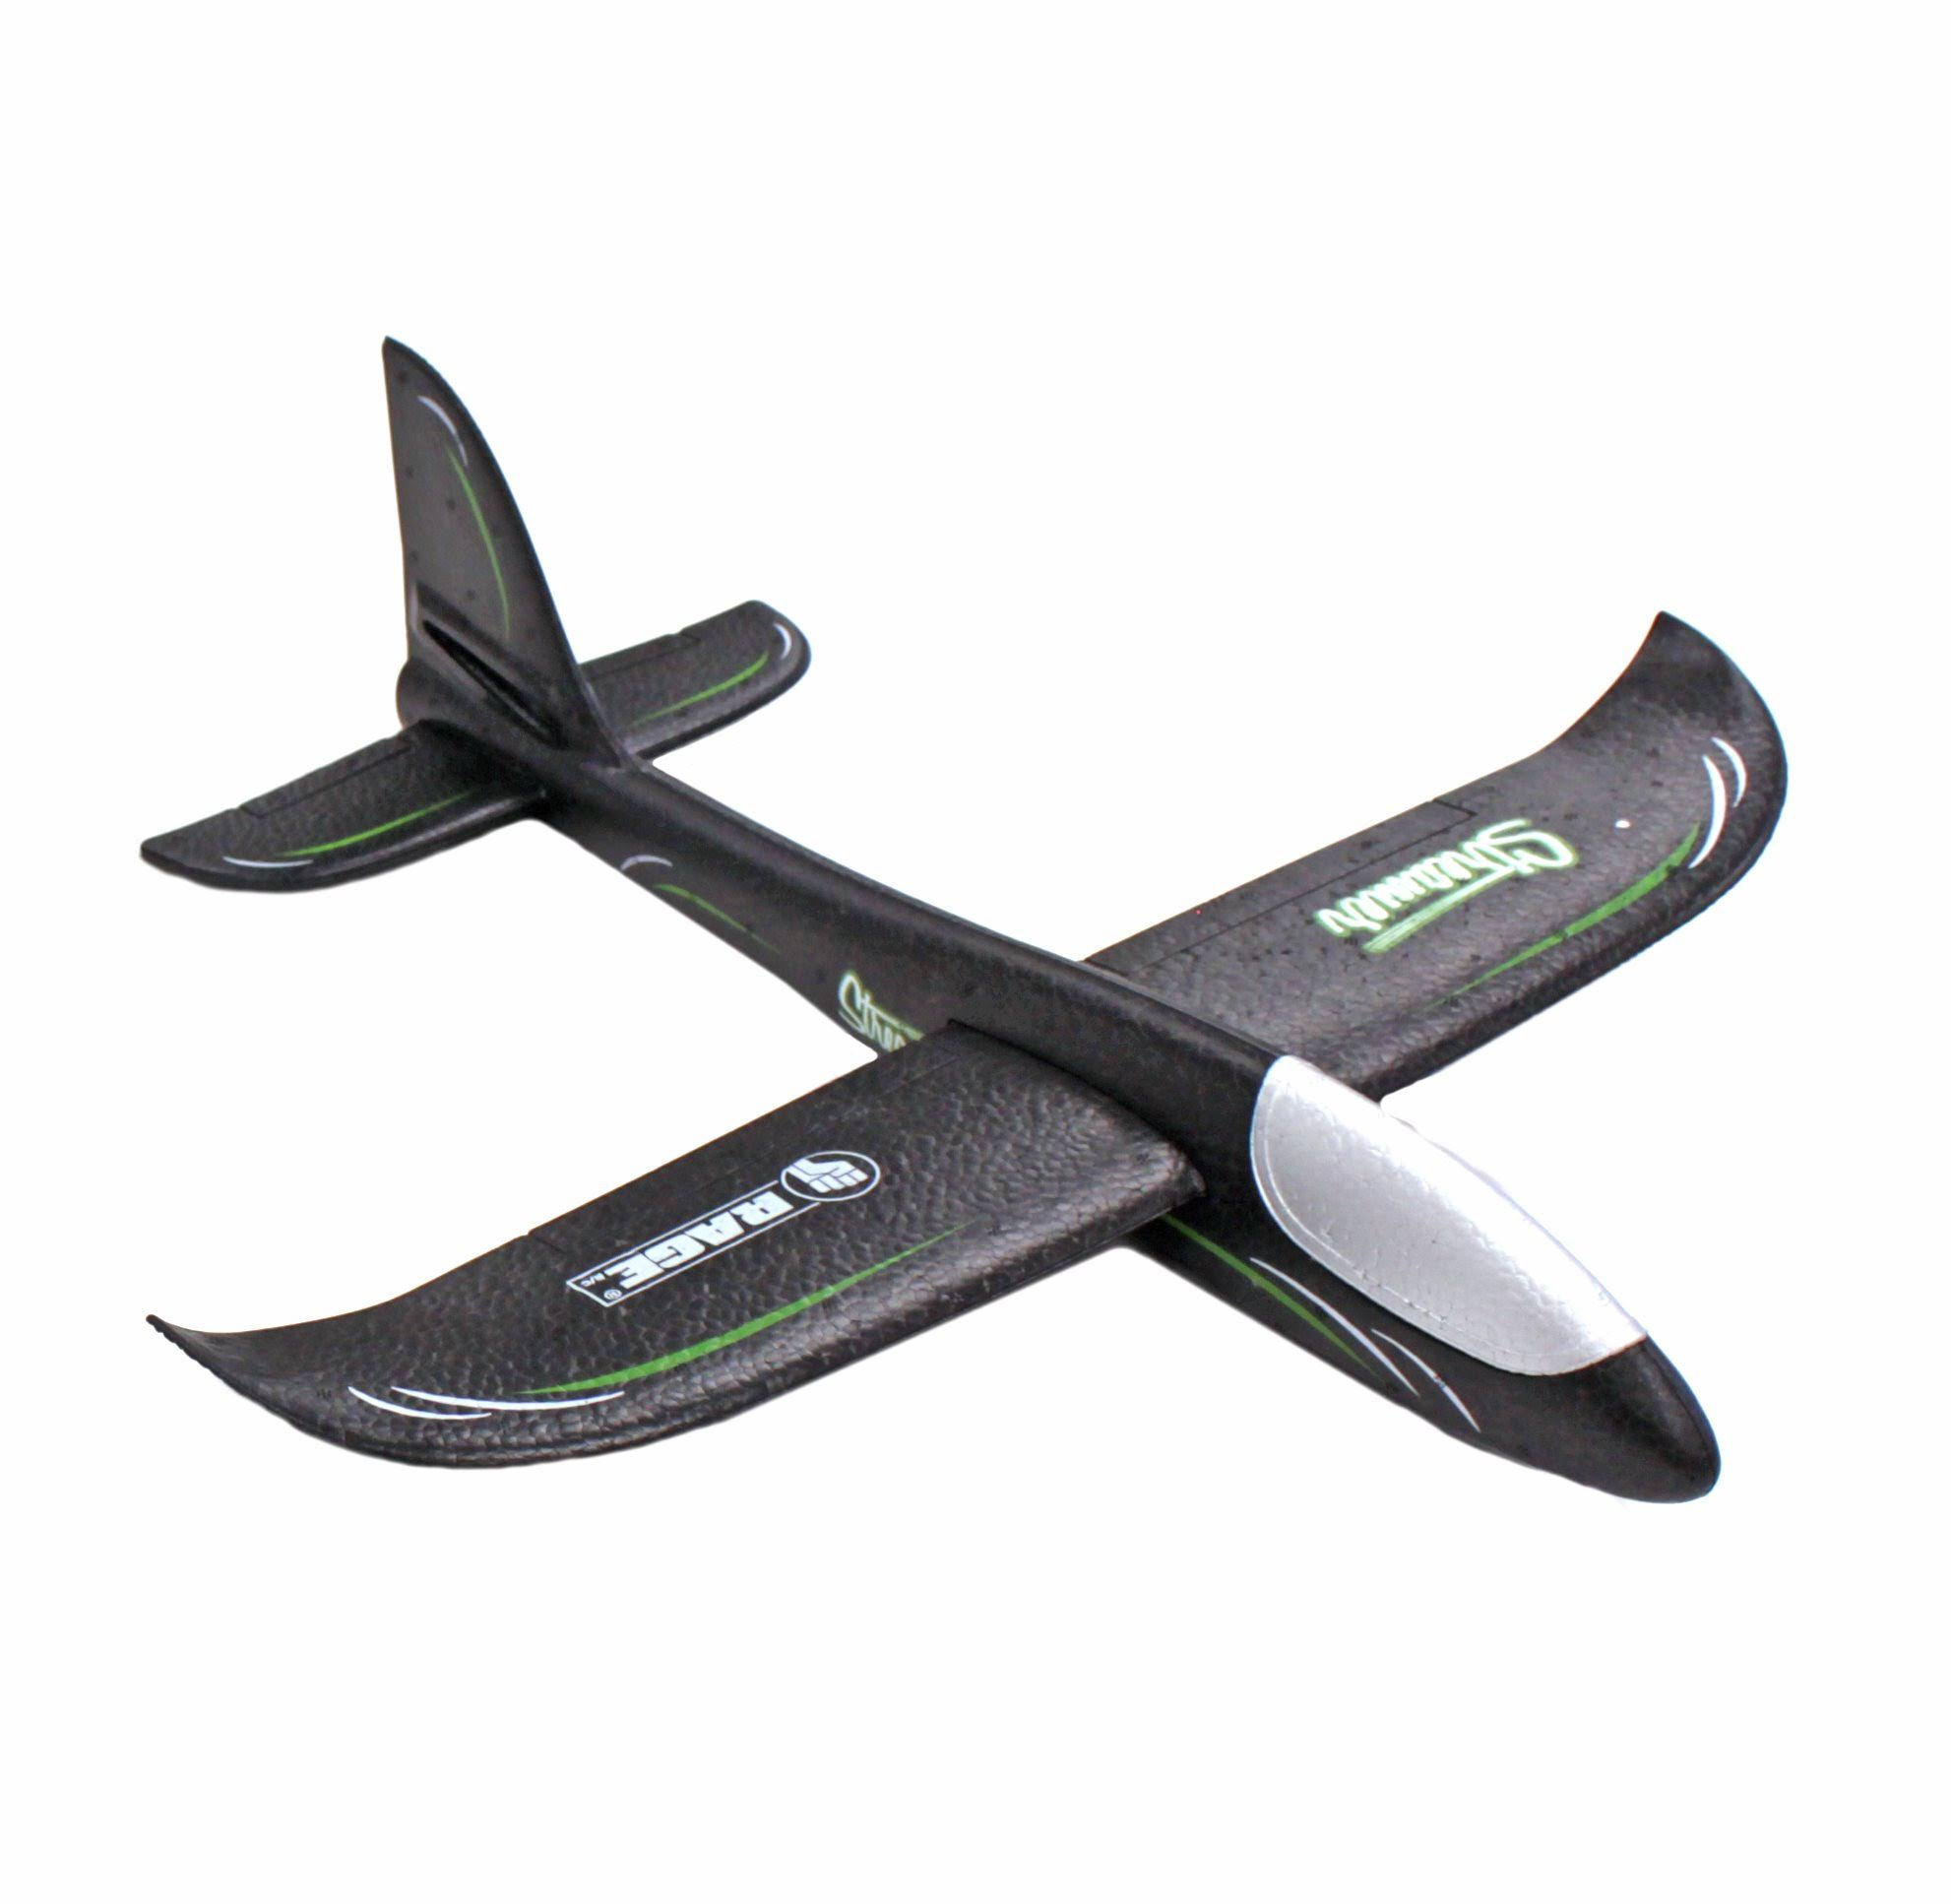 Rage RC RGR9005 Streamer Hand Launch Glider Black